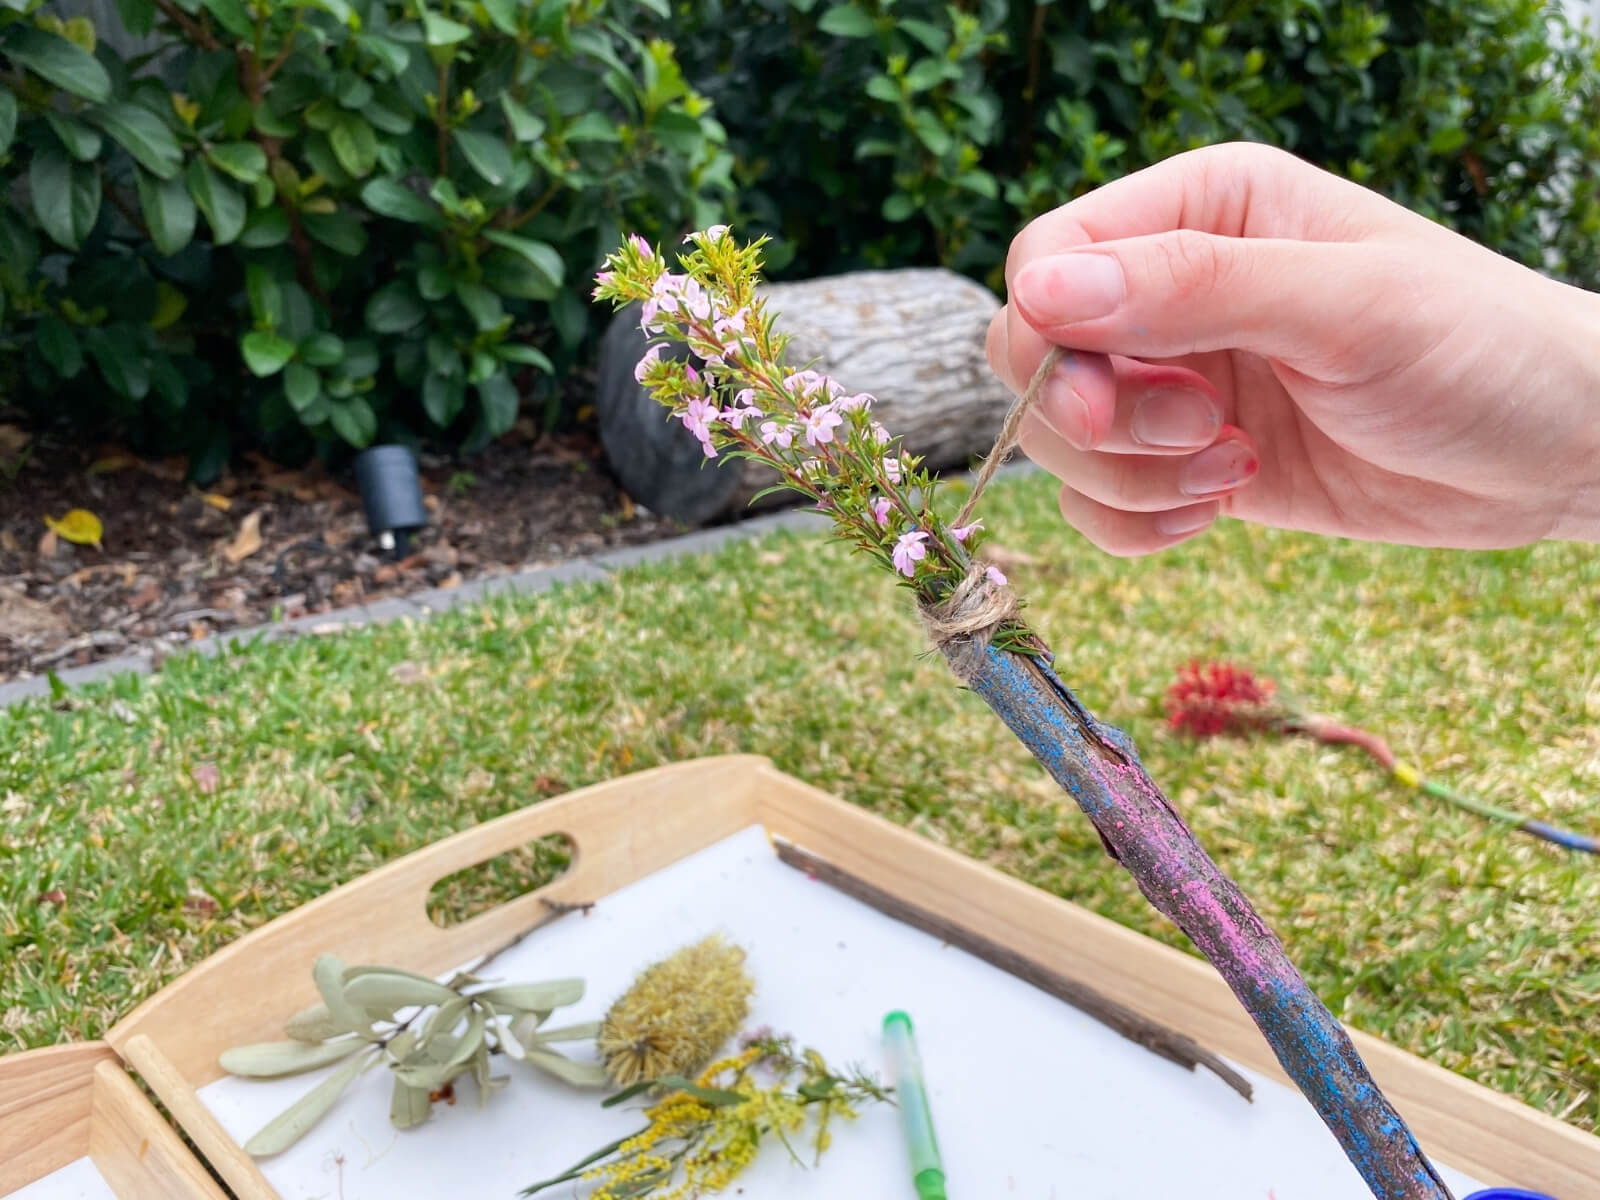 wrap the leaves and flowers around the stick